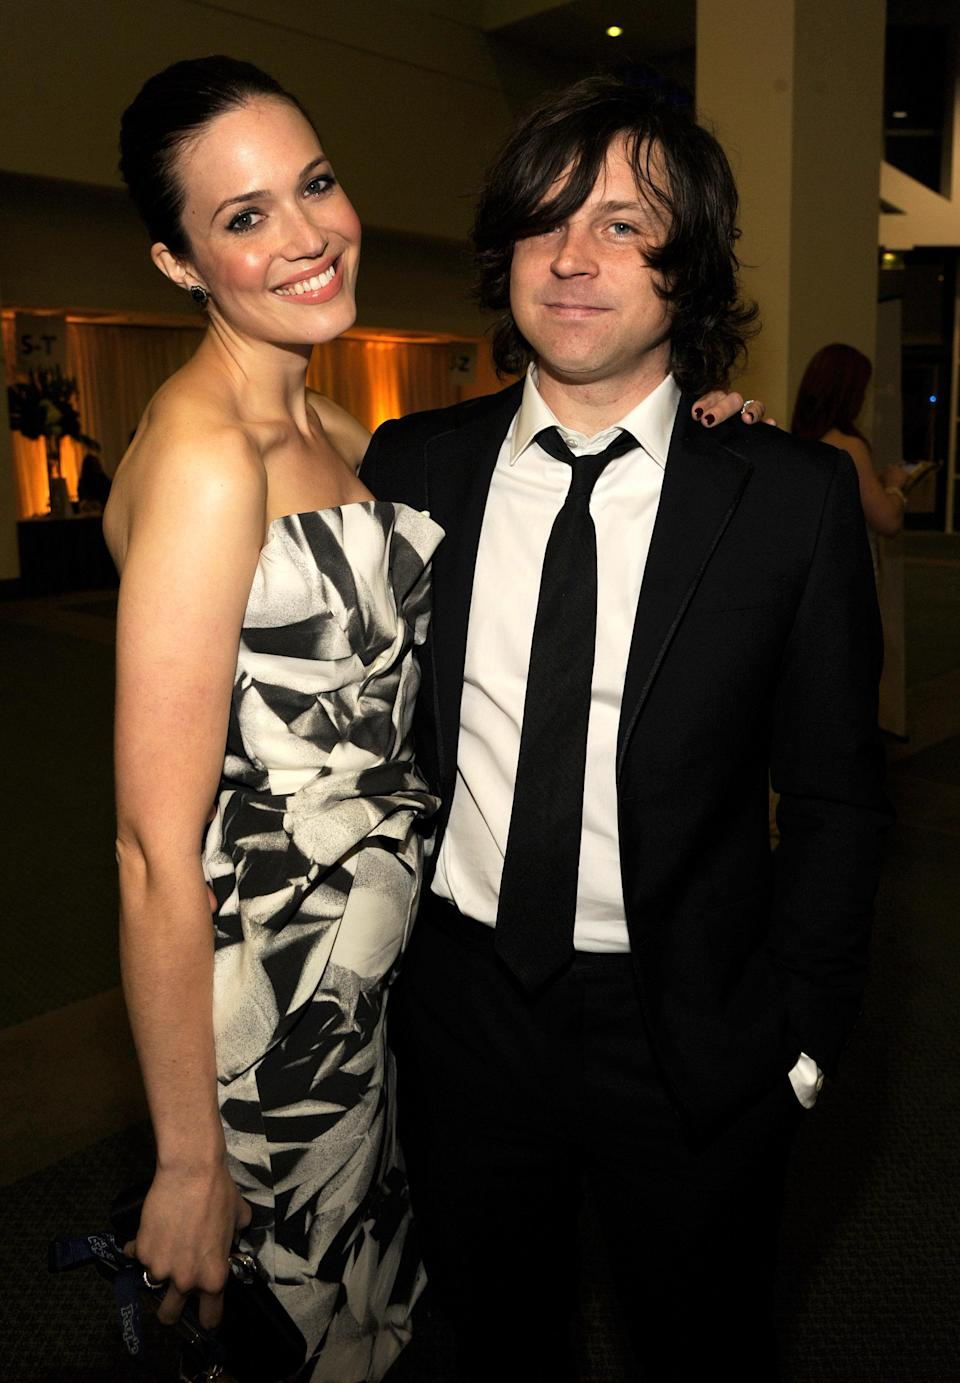 Mandy Moore and Ryan Adams in 2012. (Photo: Kevin Mazur/WireImage)